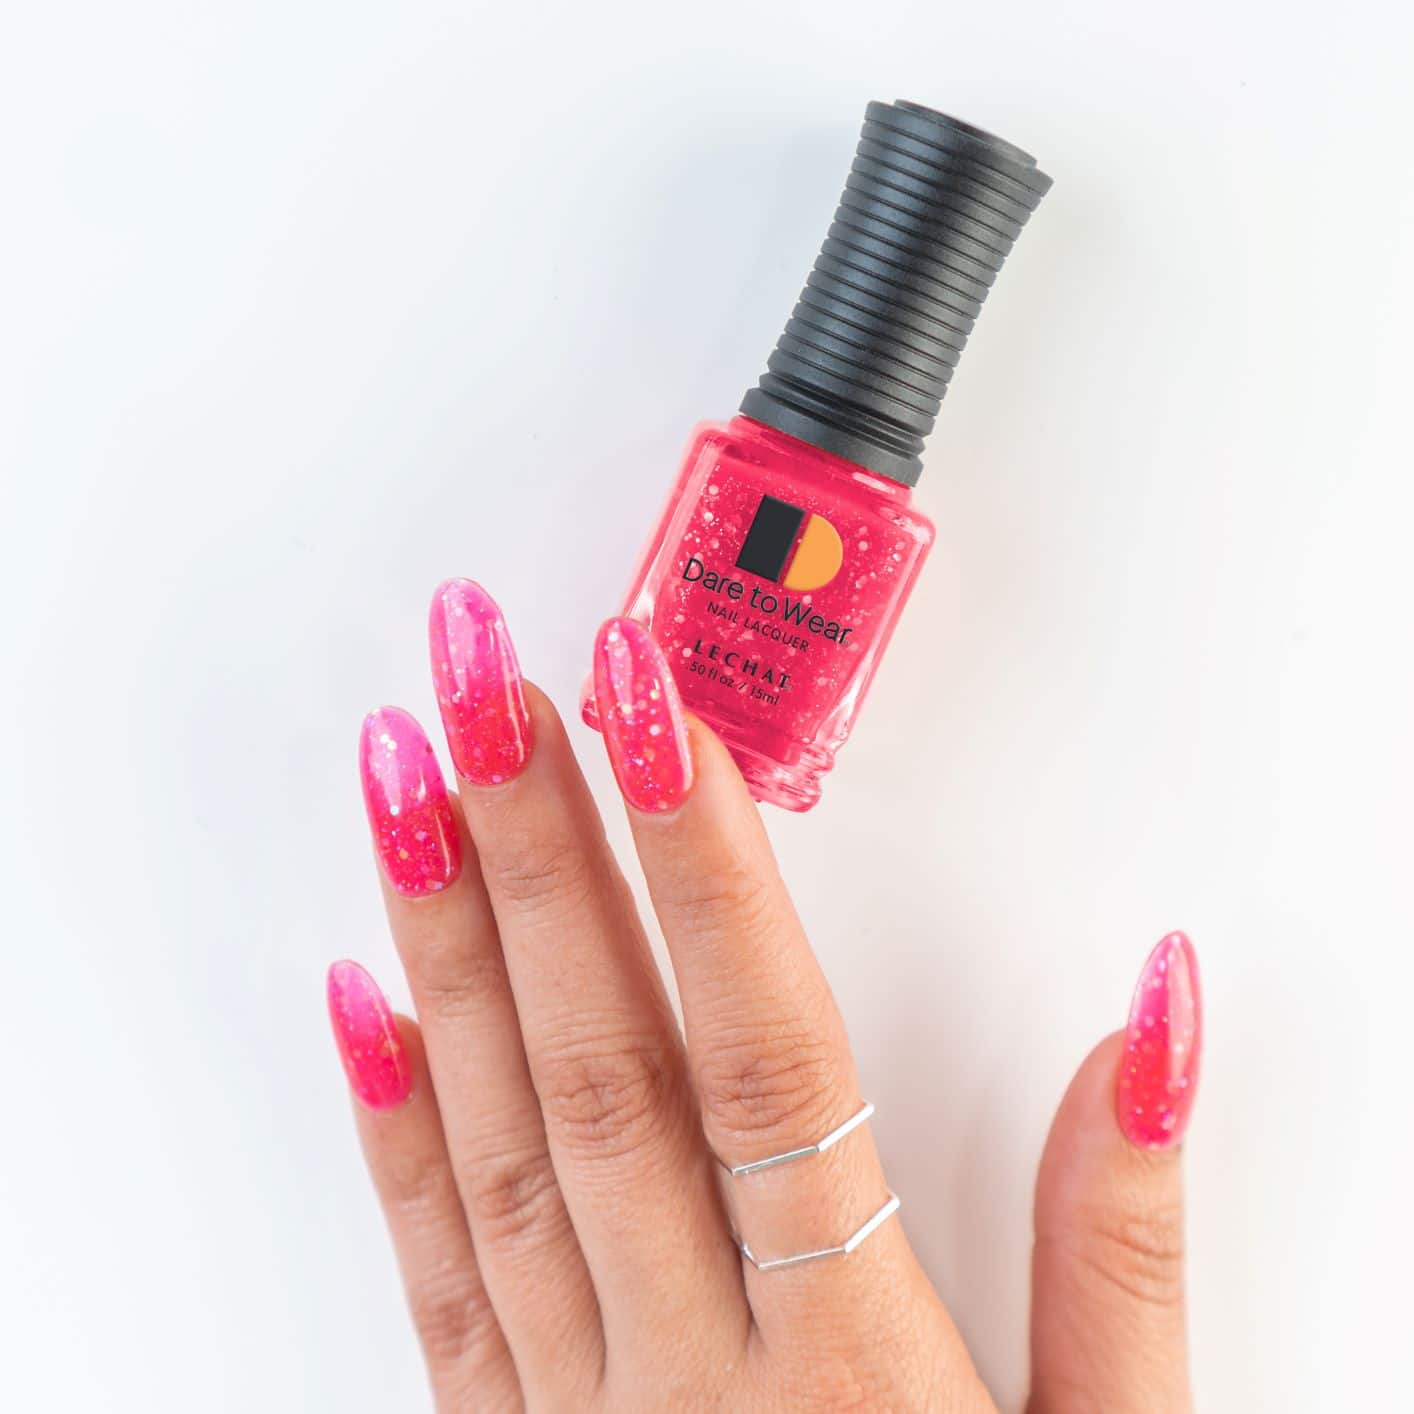 hot pink nails with glitter effect alongside lacquer bottle